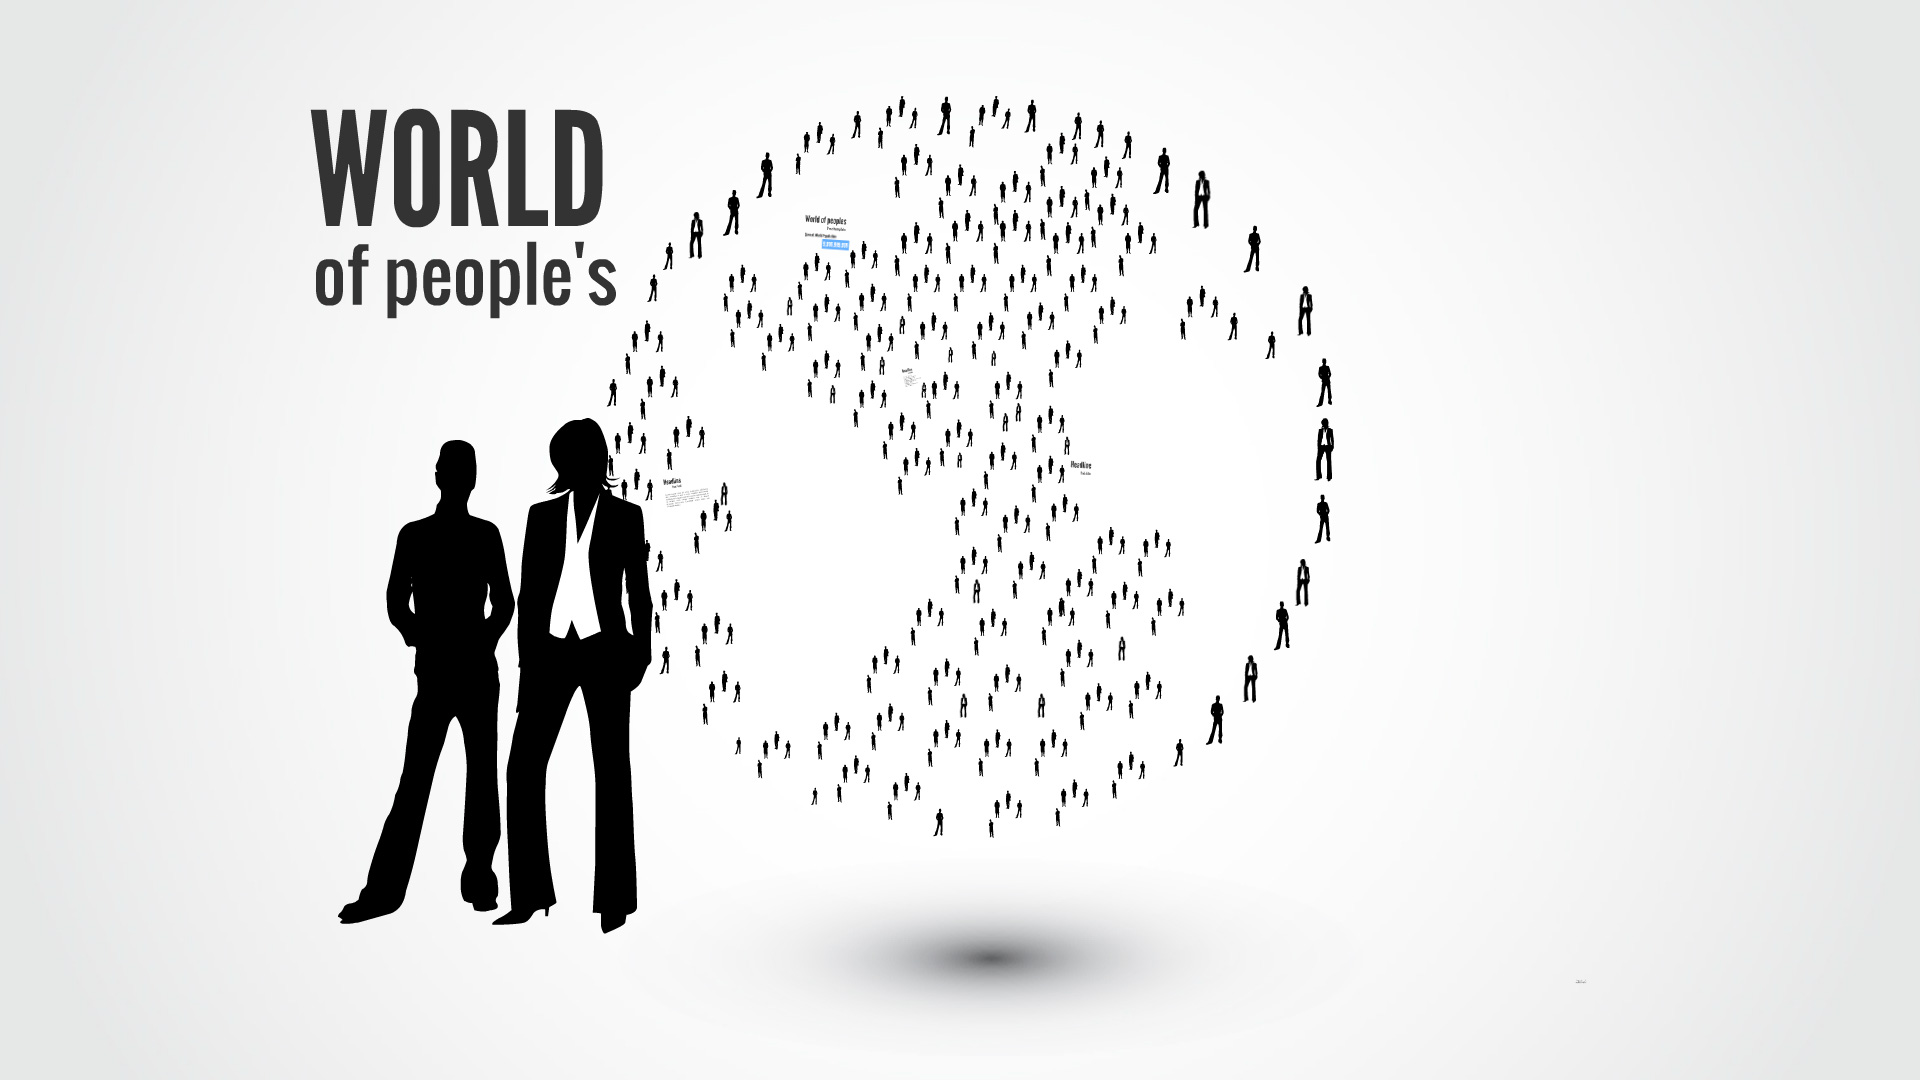 World of peoples Prezi template